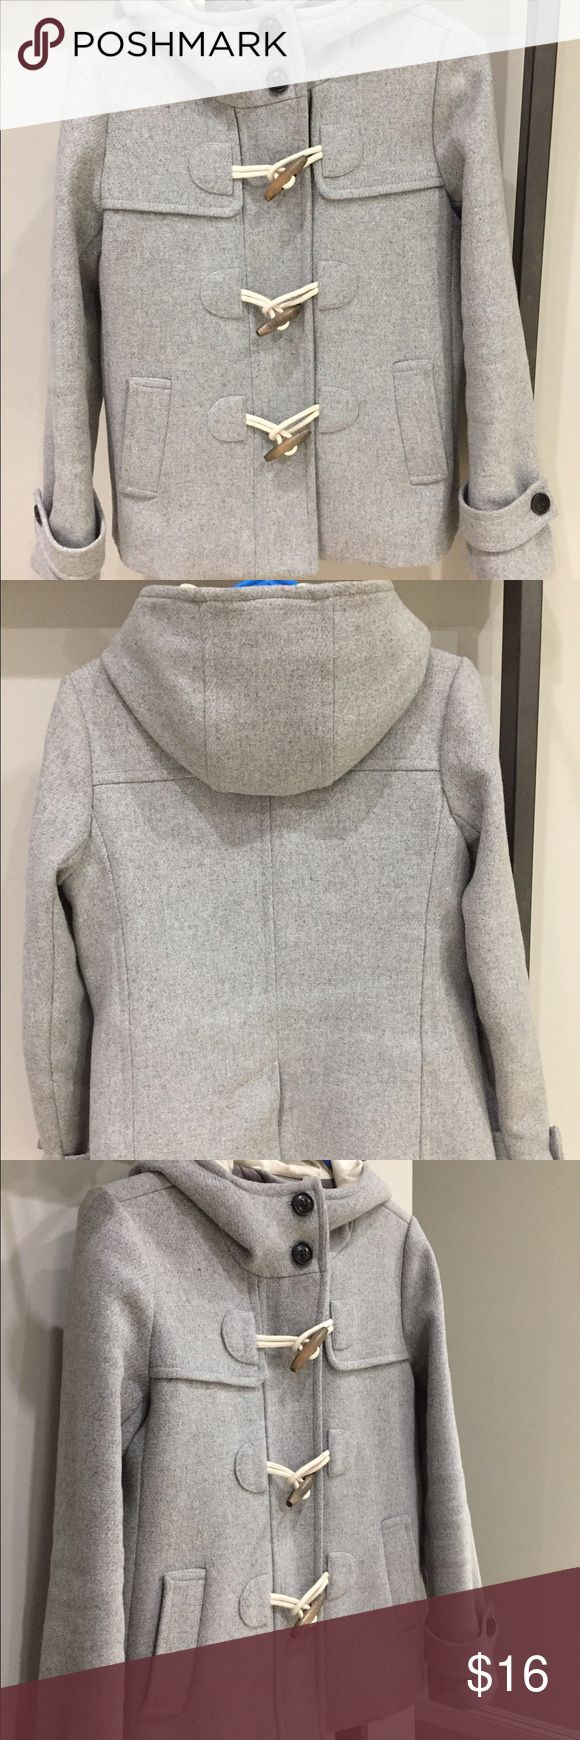 Gap coat xs Adorable grey coat with a full zipper and three classic toggles. It is in EUC and needs a new home! GAP Jackets & Coats